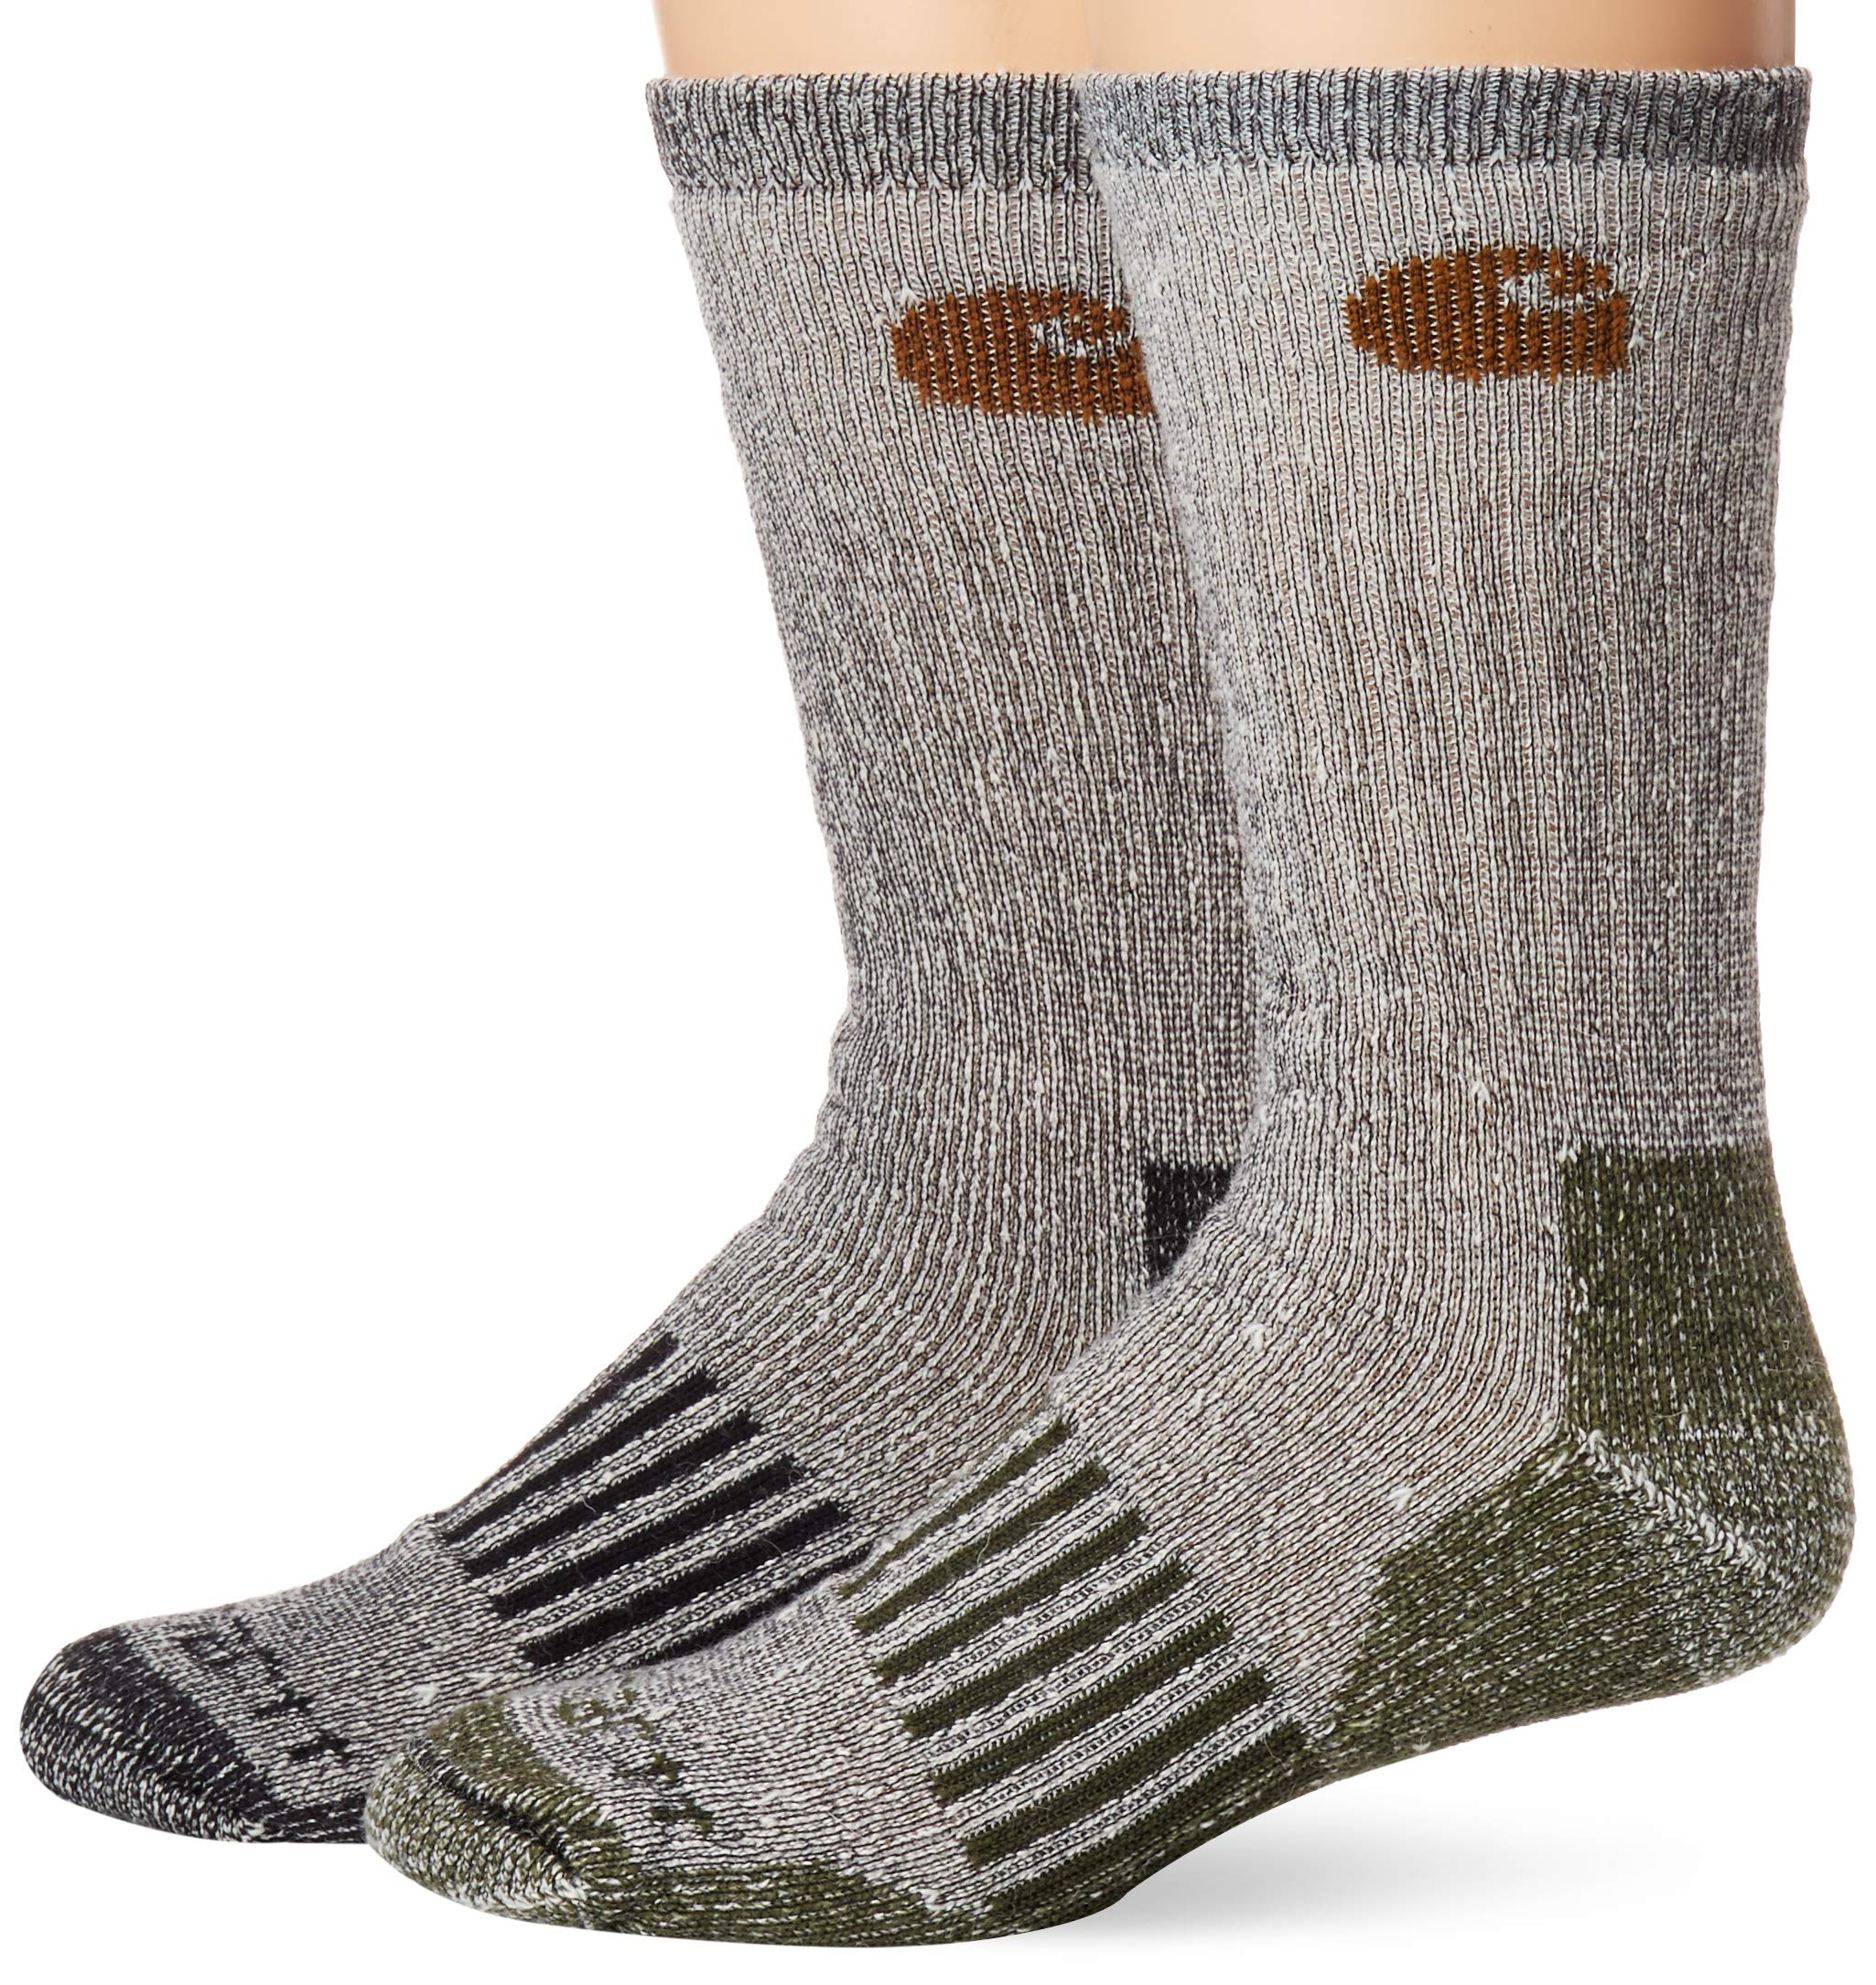 Pack of 4 Carhartt mens A118-4 Cold Weather Wool Blend Crew Socks